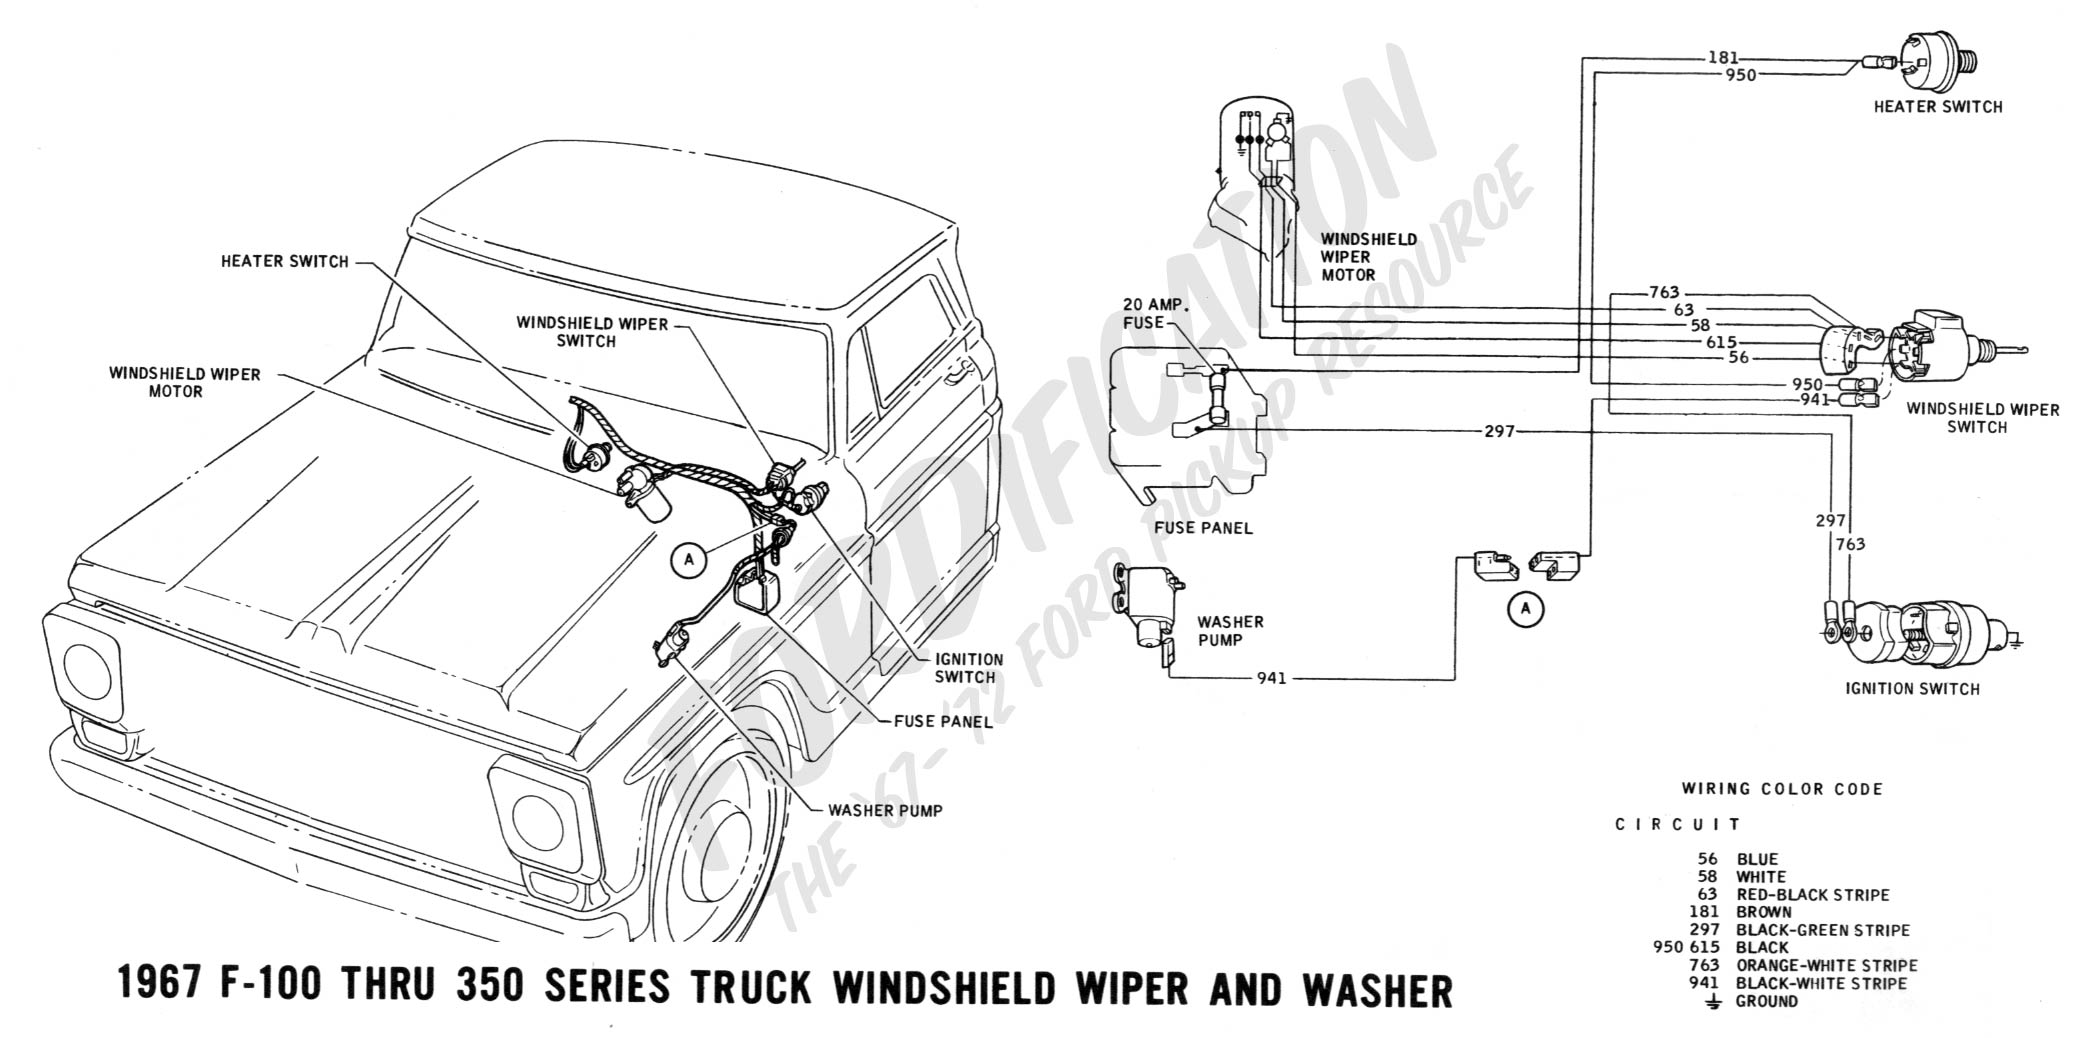 Ford Truck Technical Drawings And Schematics Section H Wiring F150 Fuel Pressure Relay Switch Diagram 1967 F 100 Thru 350 Windshield Wiper Washer